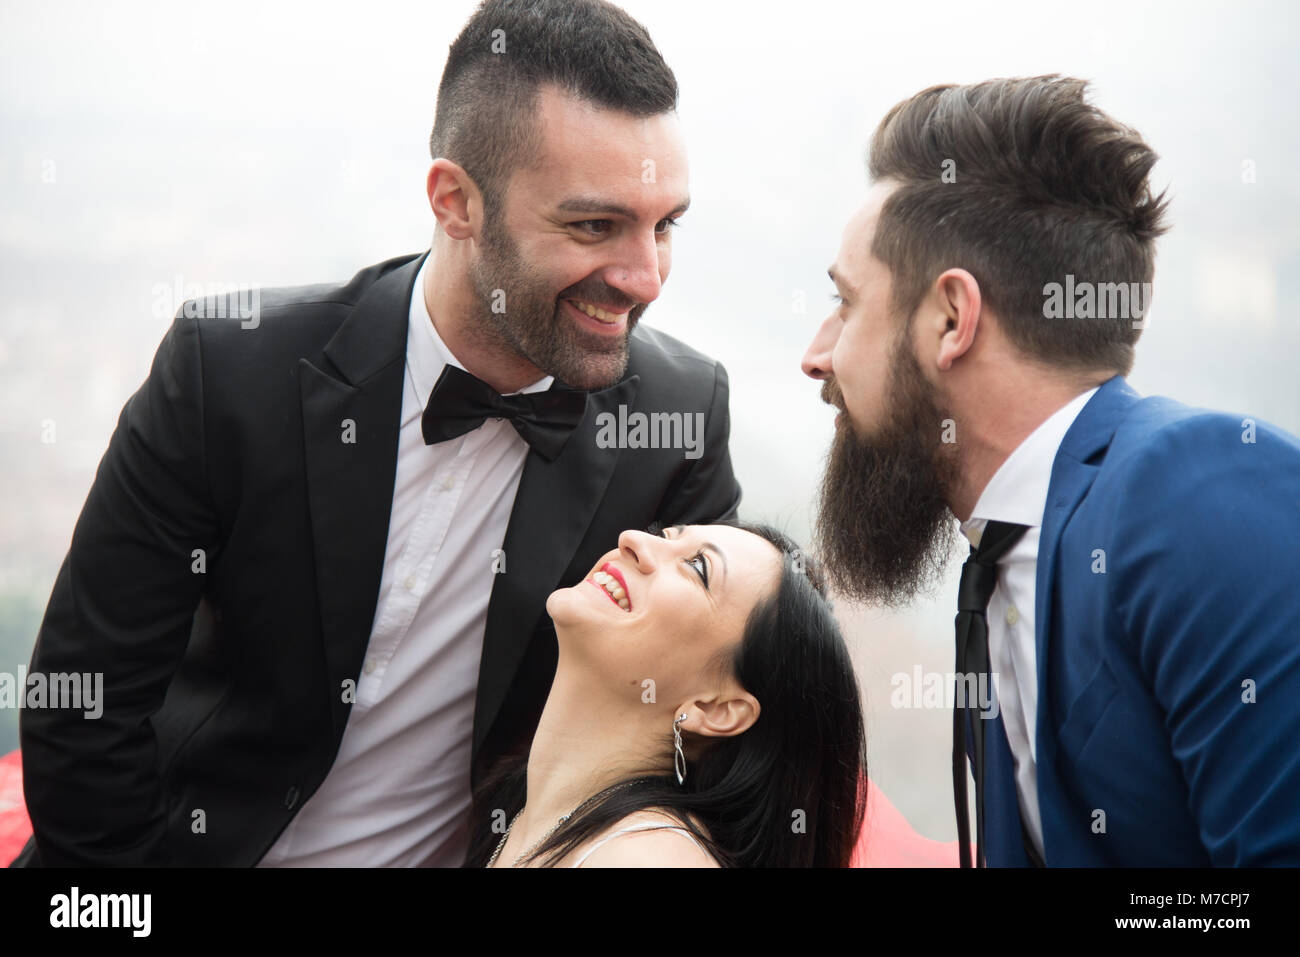 two men and a woman in love triangle, smiling resumed in the foreground - Stock Image